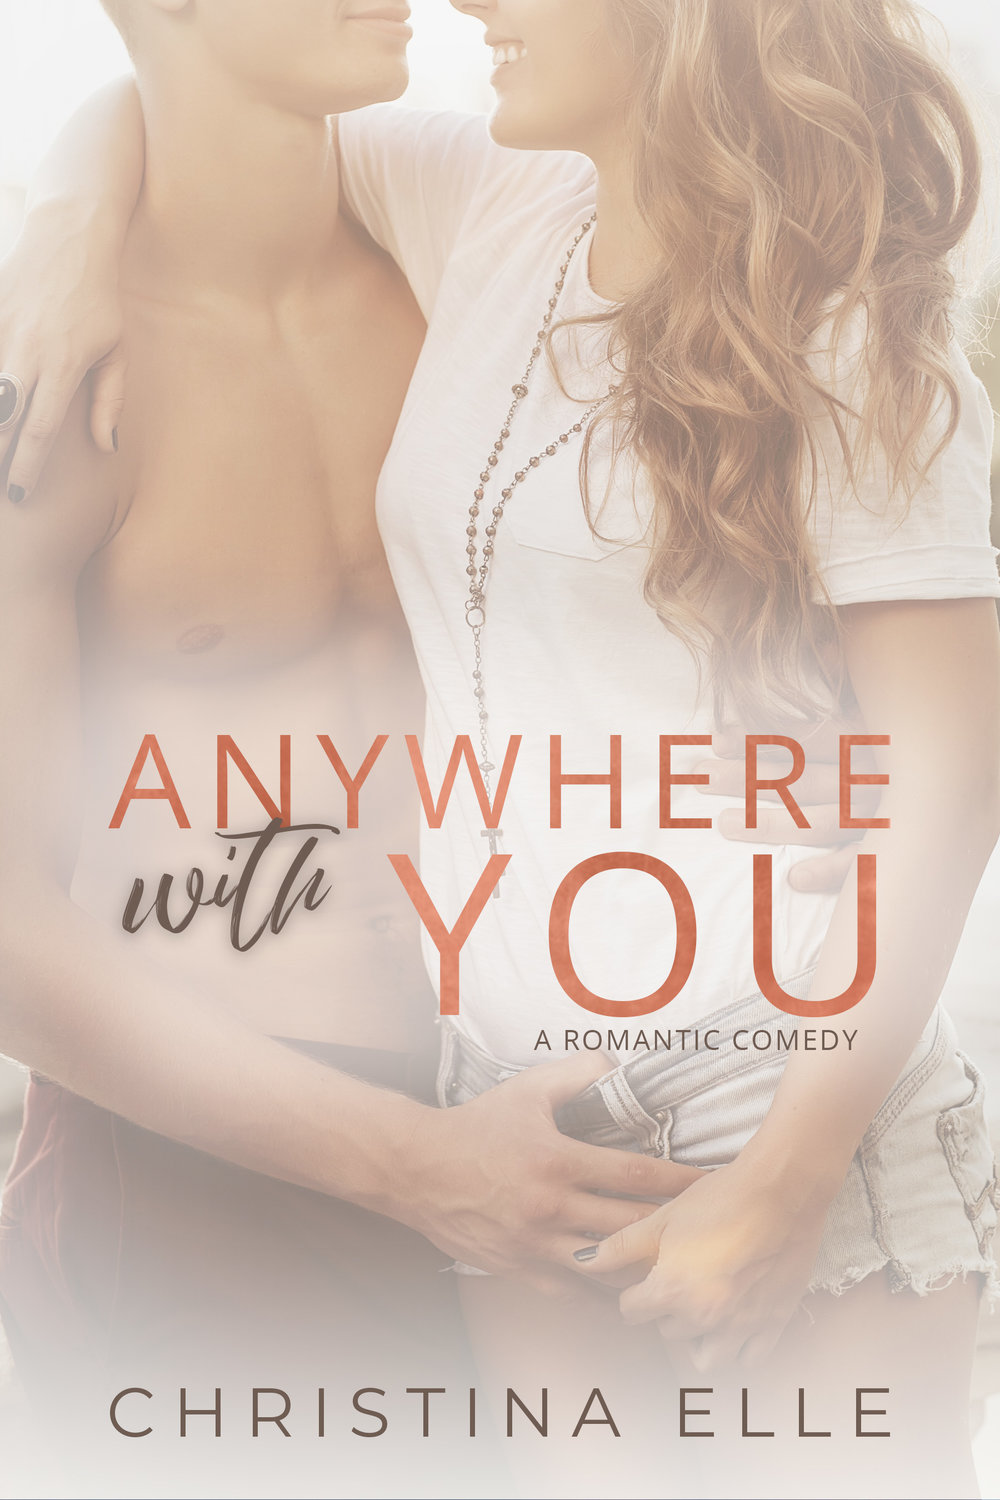 AnywhereWithYou-ebook cover.jpg